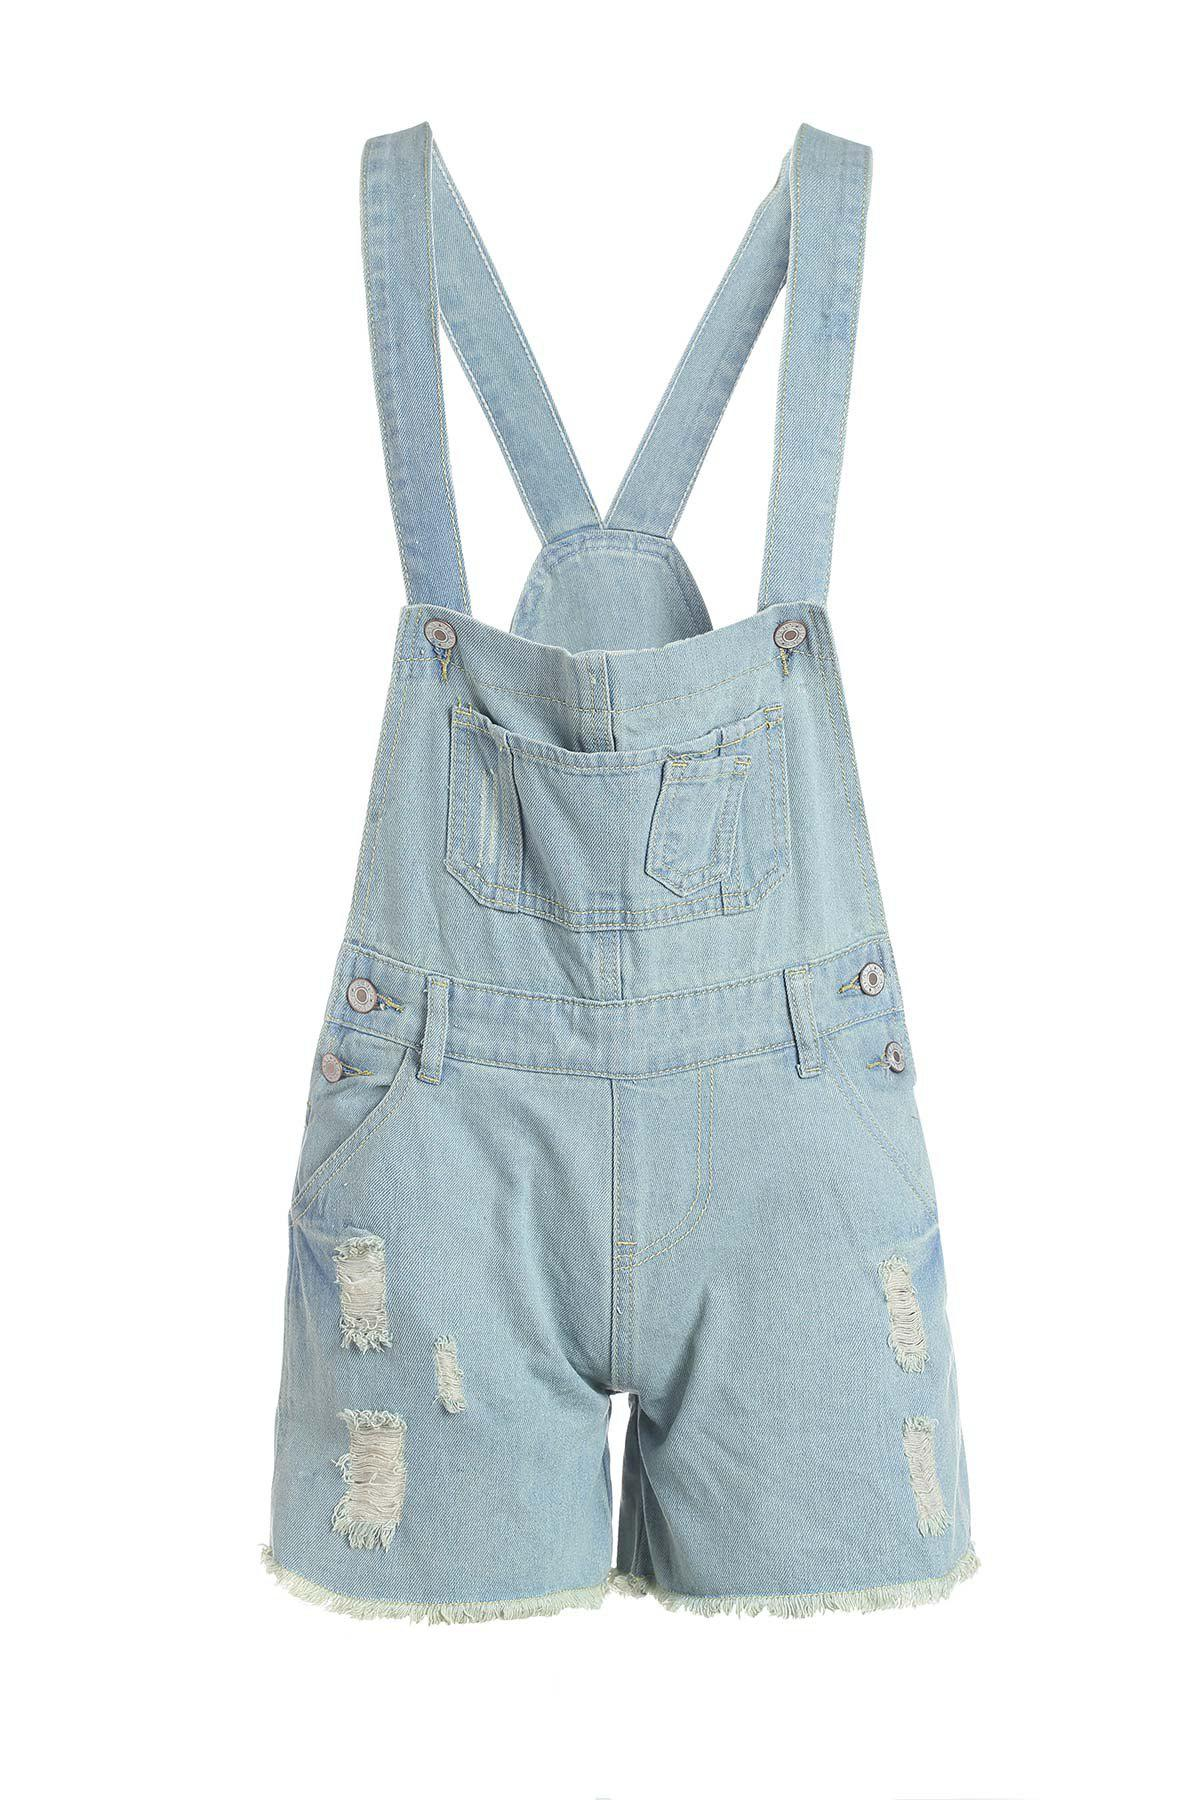 Discount Ripped Design Buttons Embellished Denim Women's Overalls Shorts